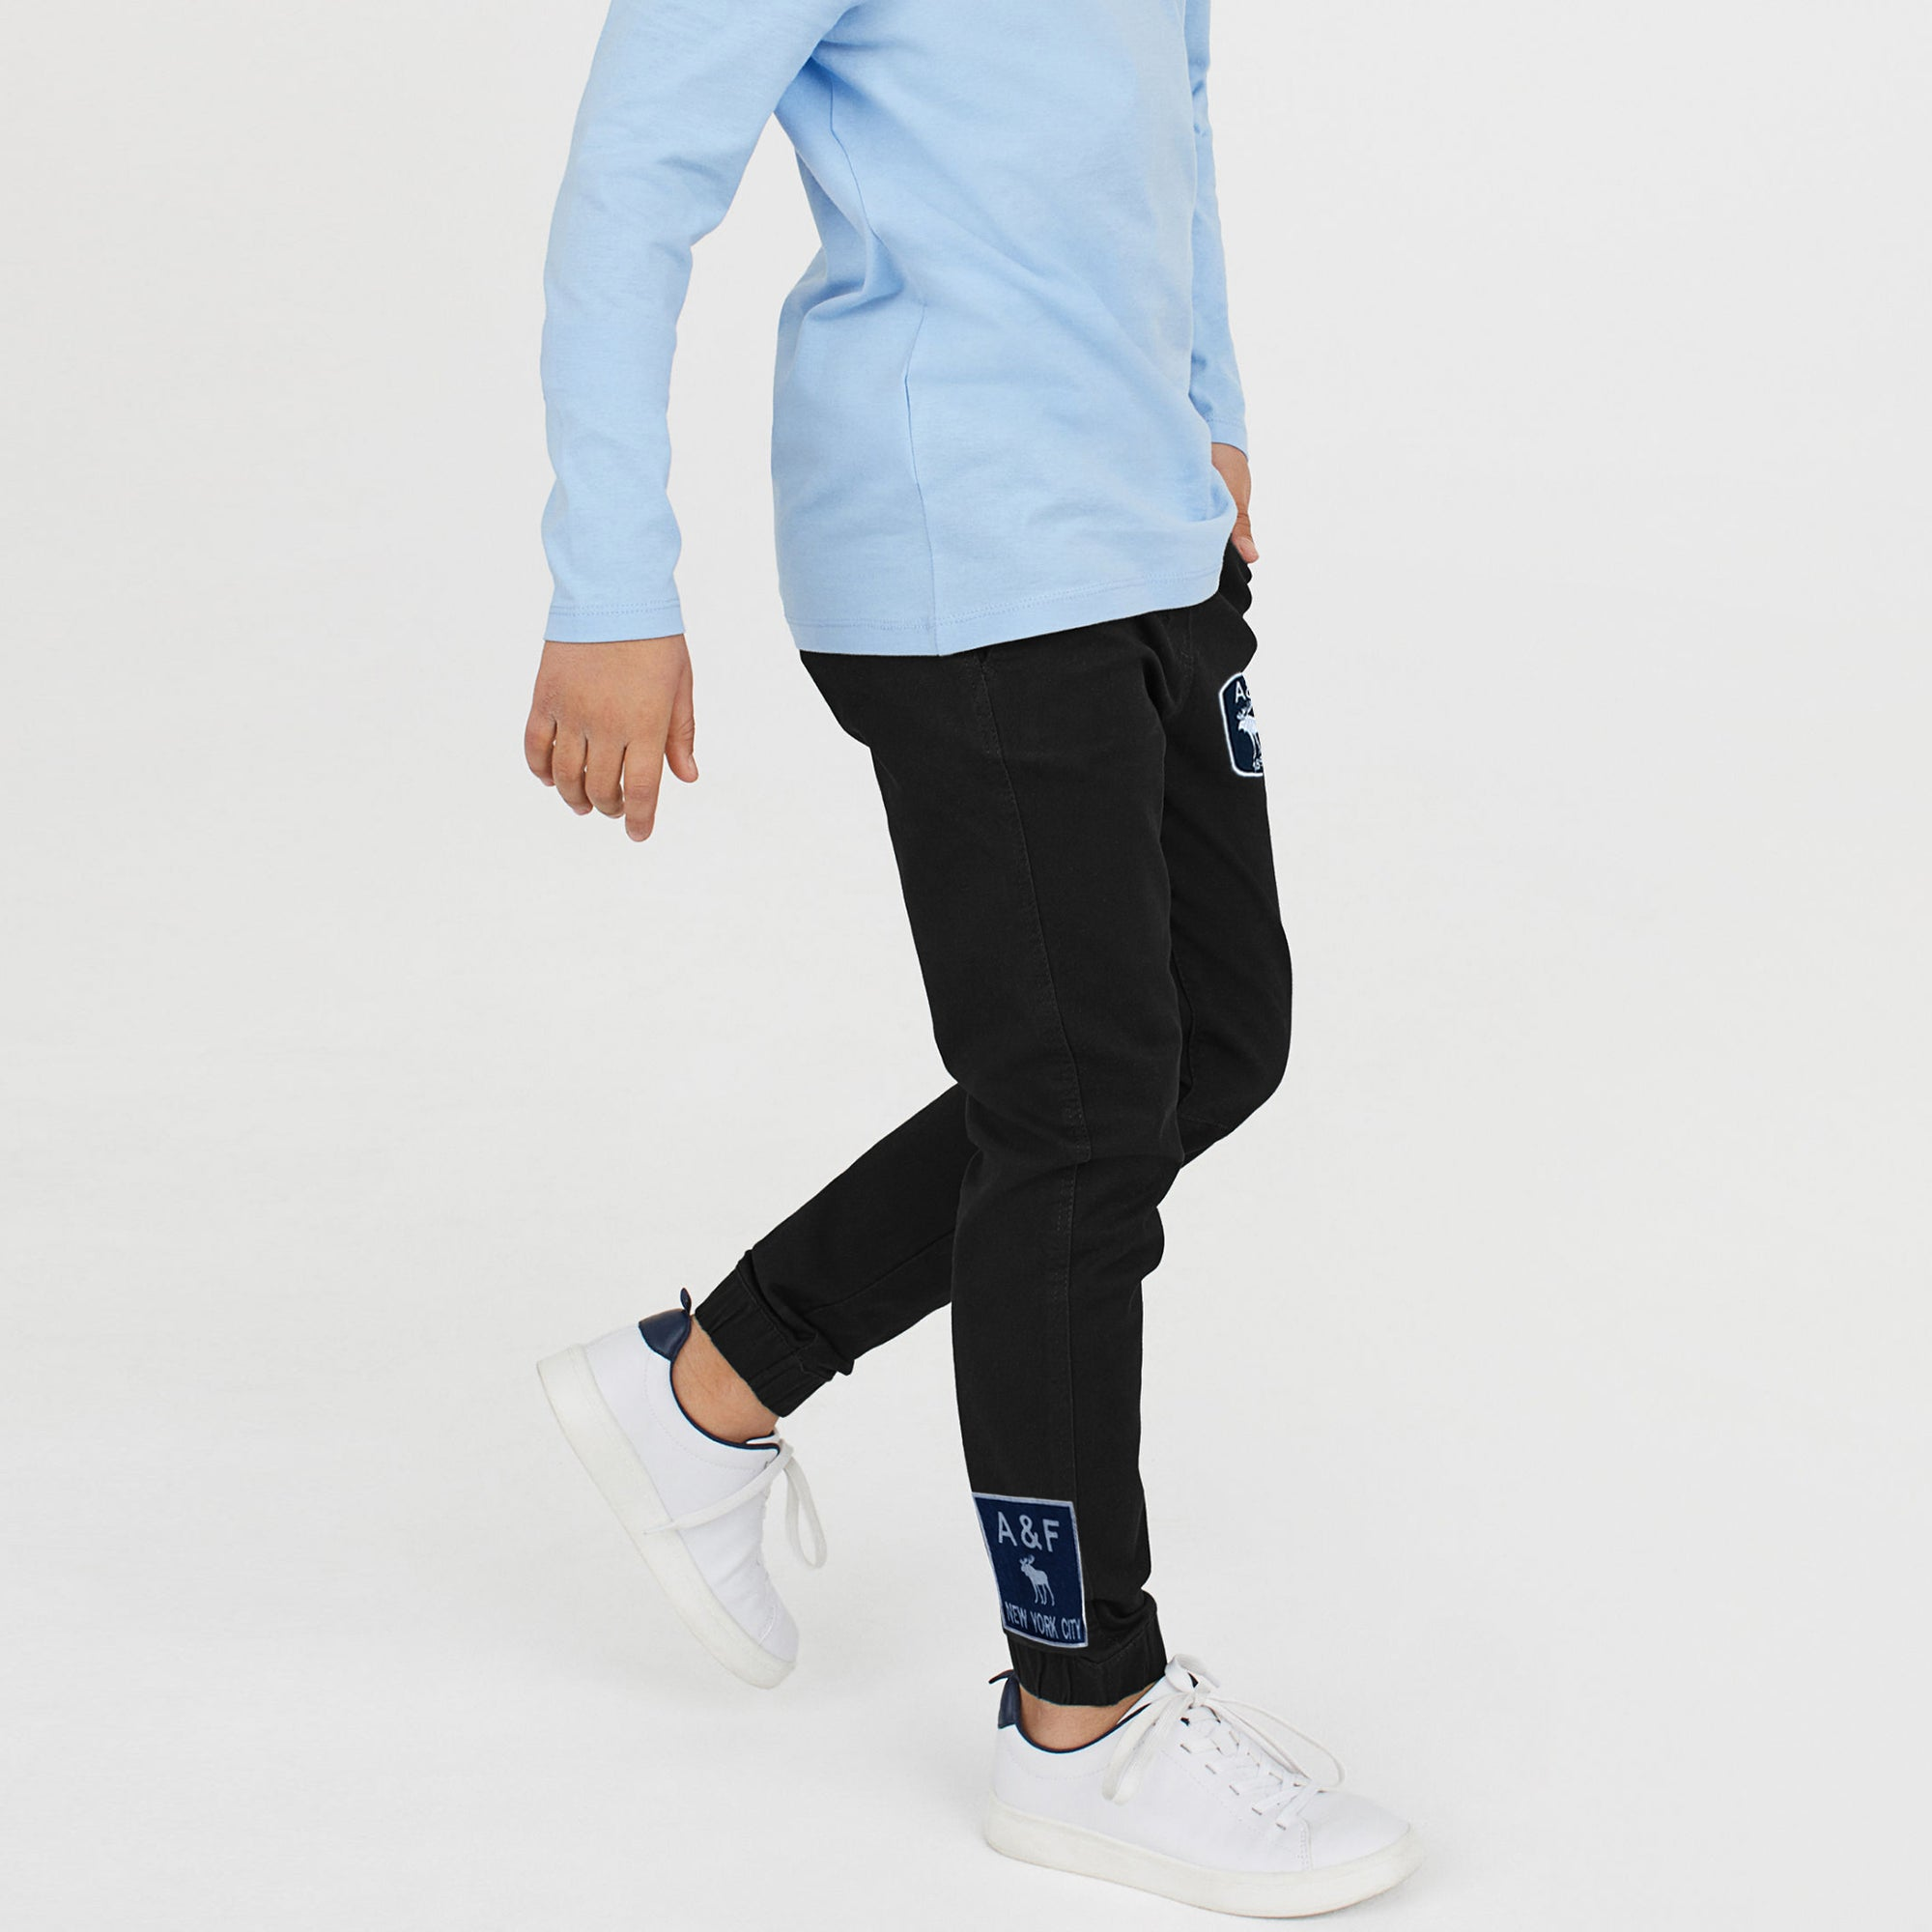 A&F Fleece Jogger Trouser For Kids-Black-BE7899